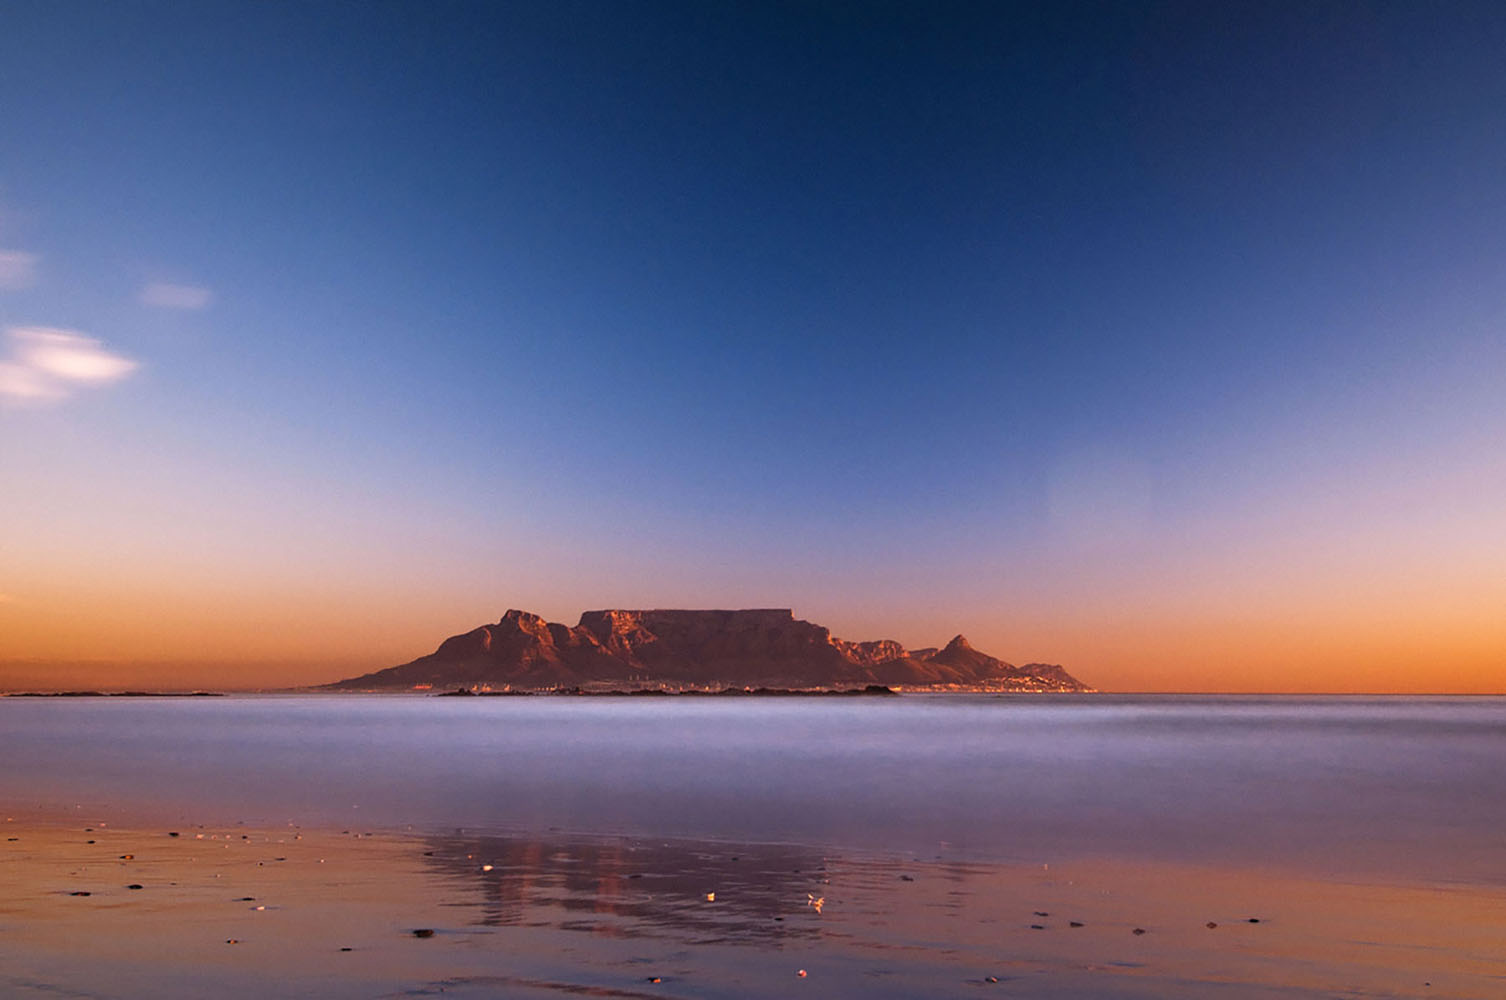 Cape Town's Table Mountain at sunset.